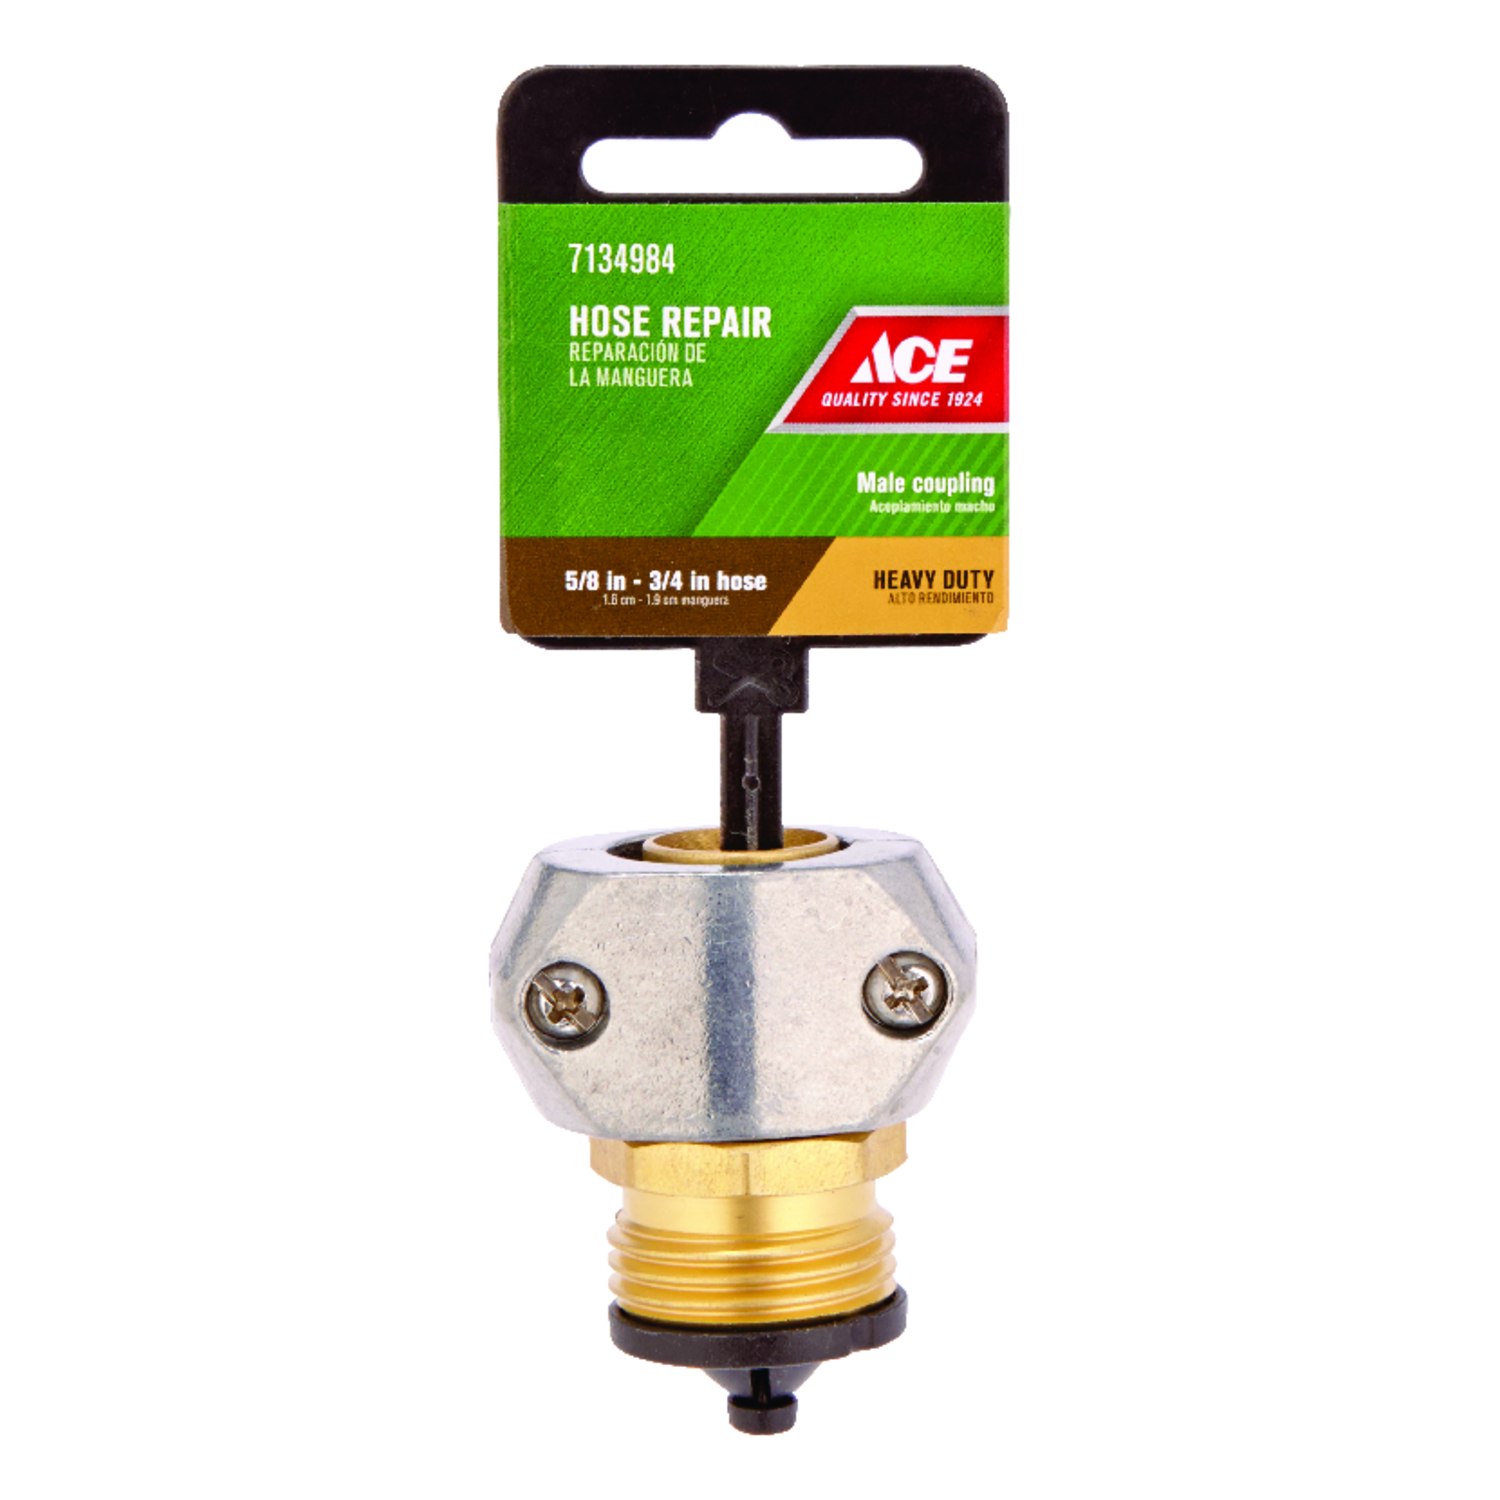 Ace 5/8 or 3/4 in. Zinc Threaded Male Hose Mender Clamp - Ace Hardware